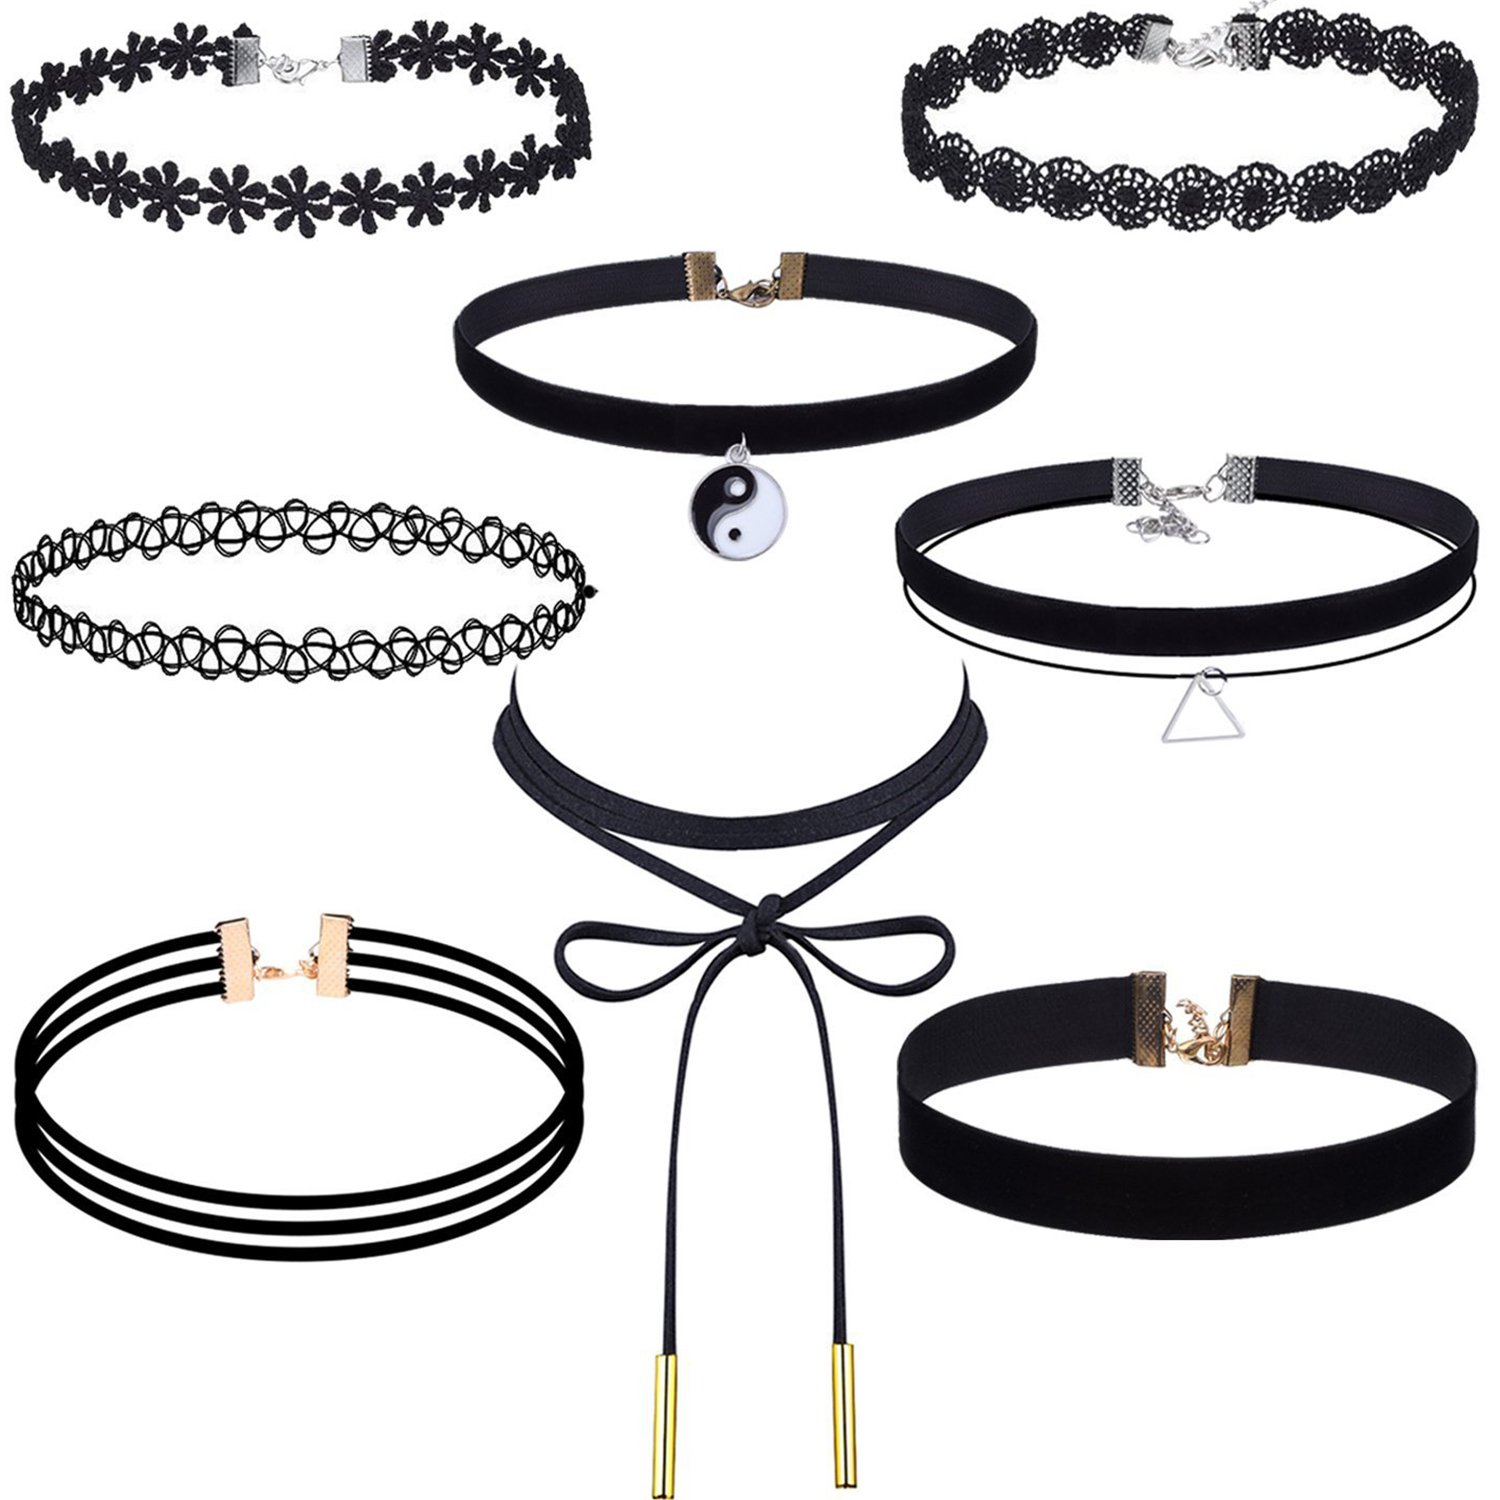 Outus 8 Pieces Choker Necklace Set Stretch Velvet Classic Gothic Tattoo Lace Choker Necklaces, Black